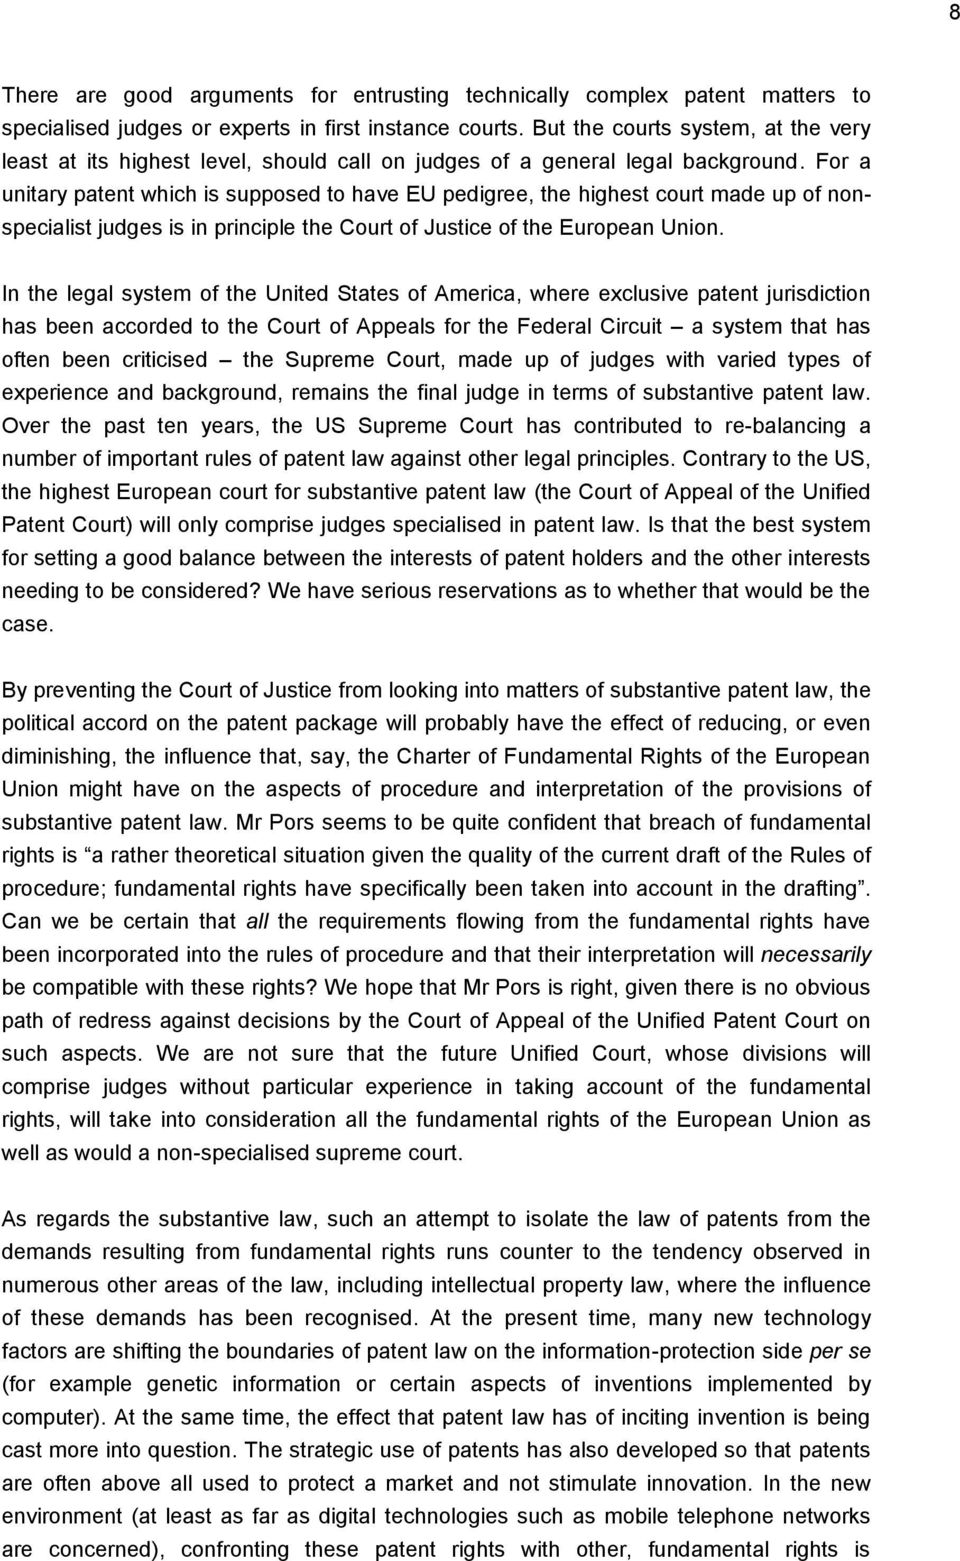 For a unitary patent which is supposed to have EU pedigree, the highest court made up of nonspecialist judges is in principle the Court of Justice of the European Union.